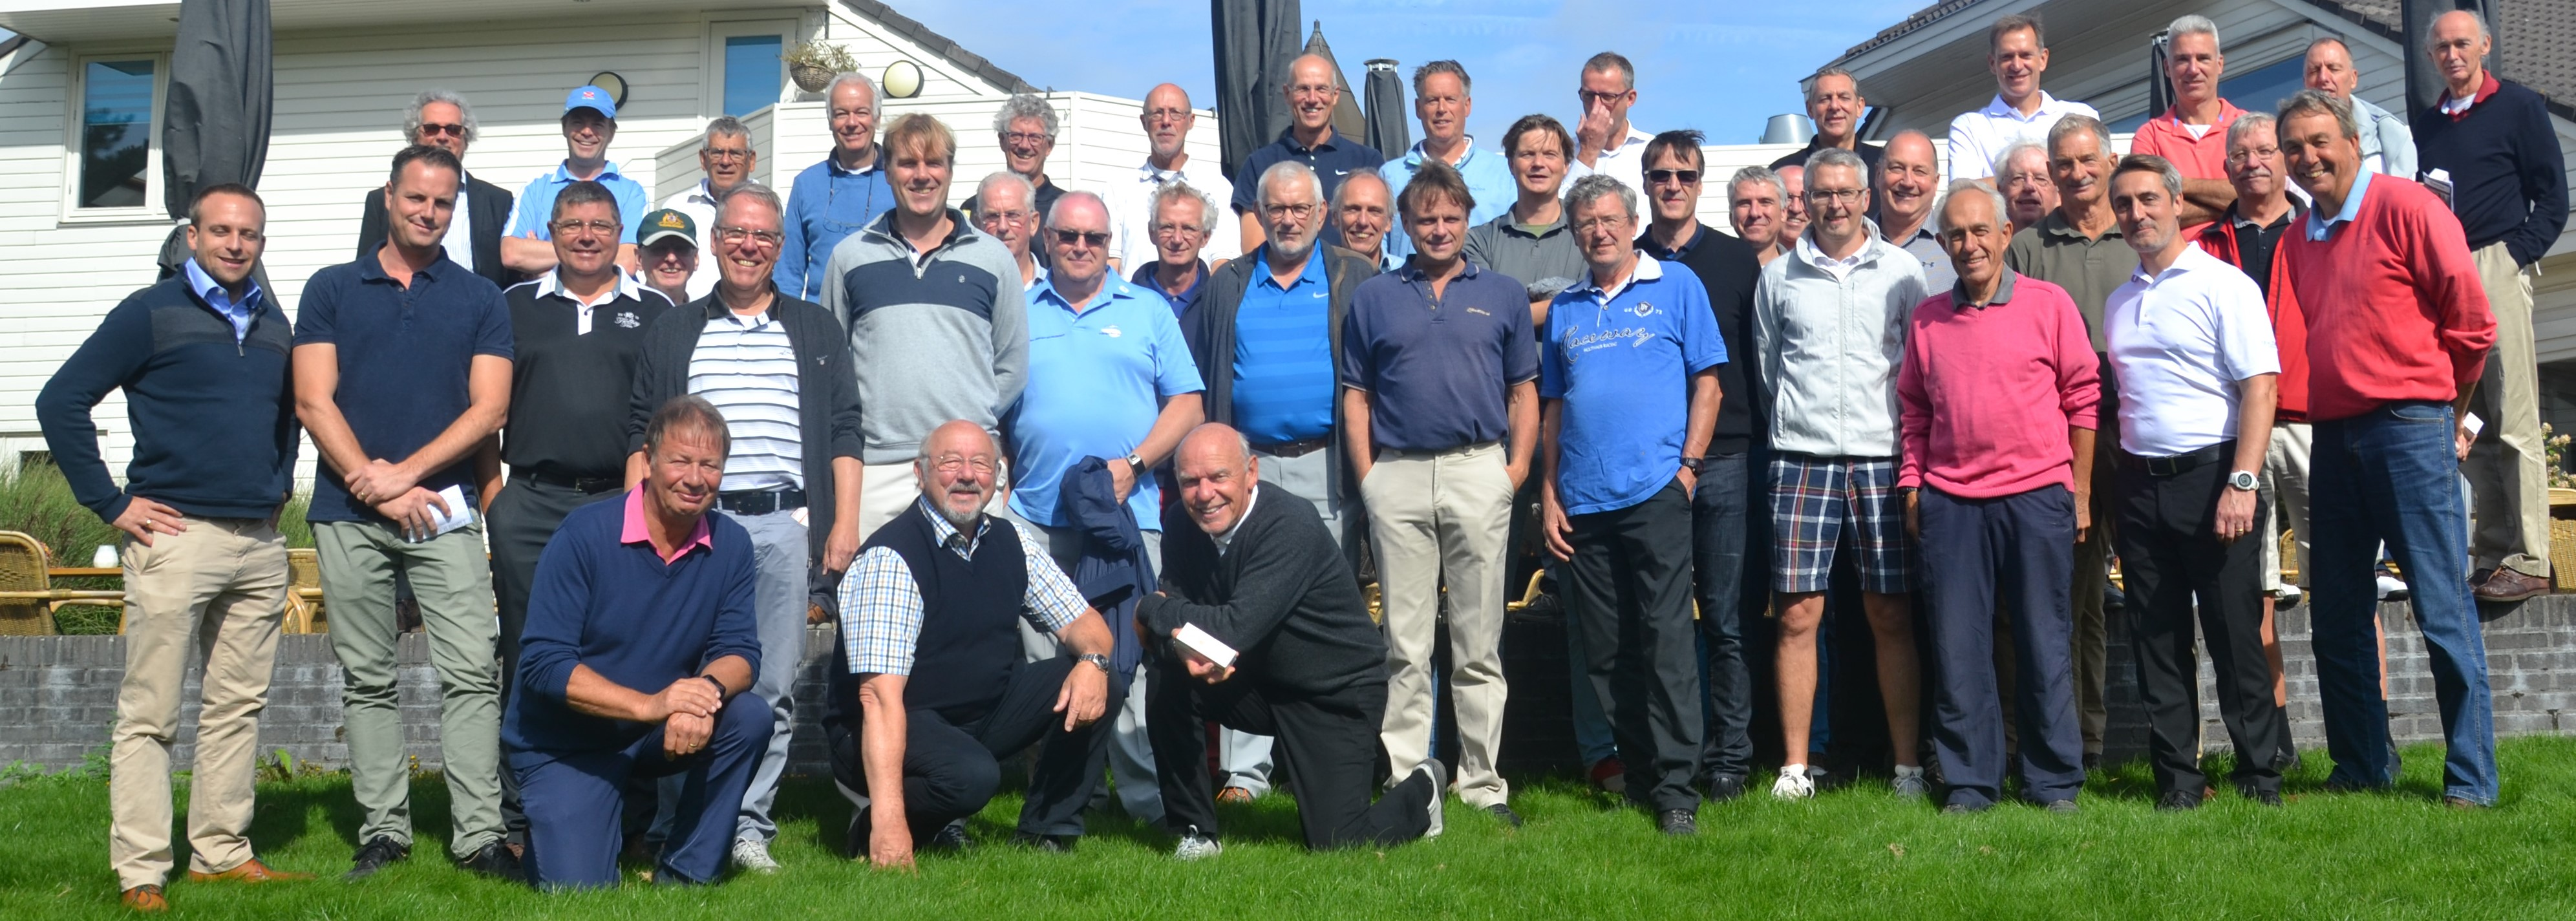 2018 VZM Dutch Aviation Open participants